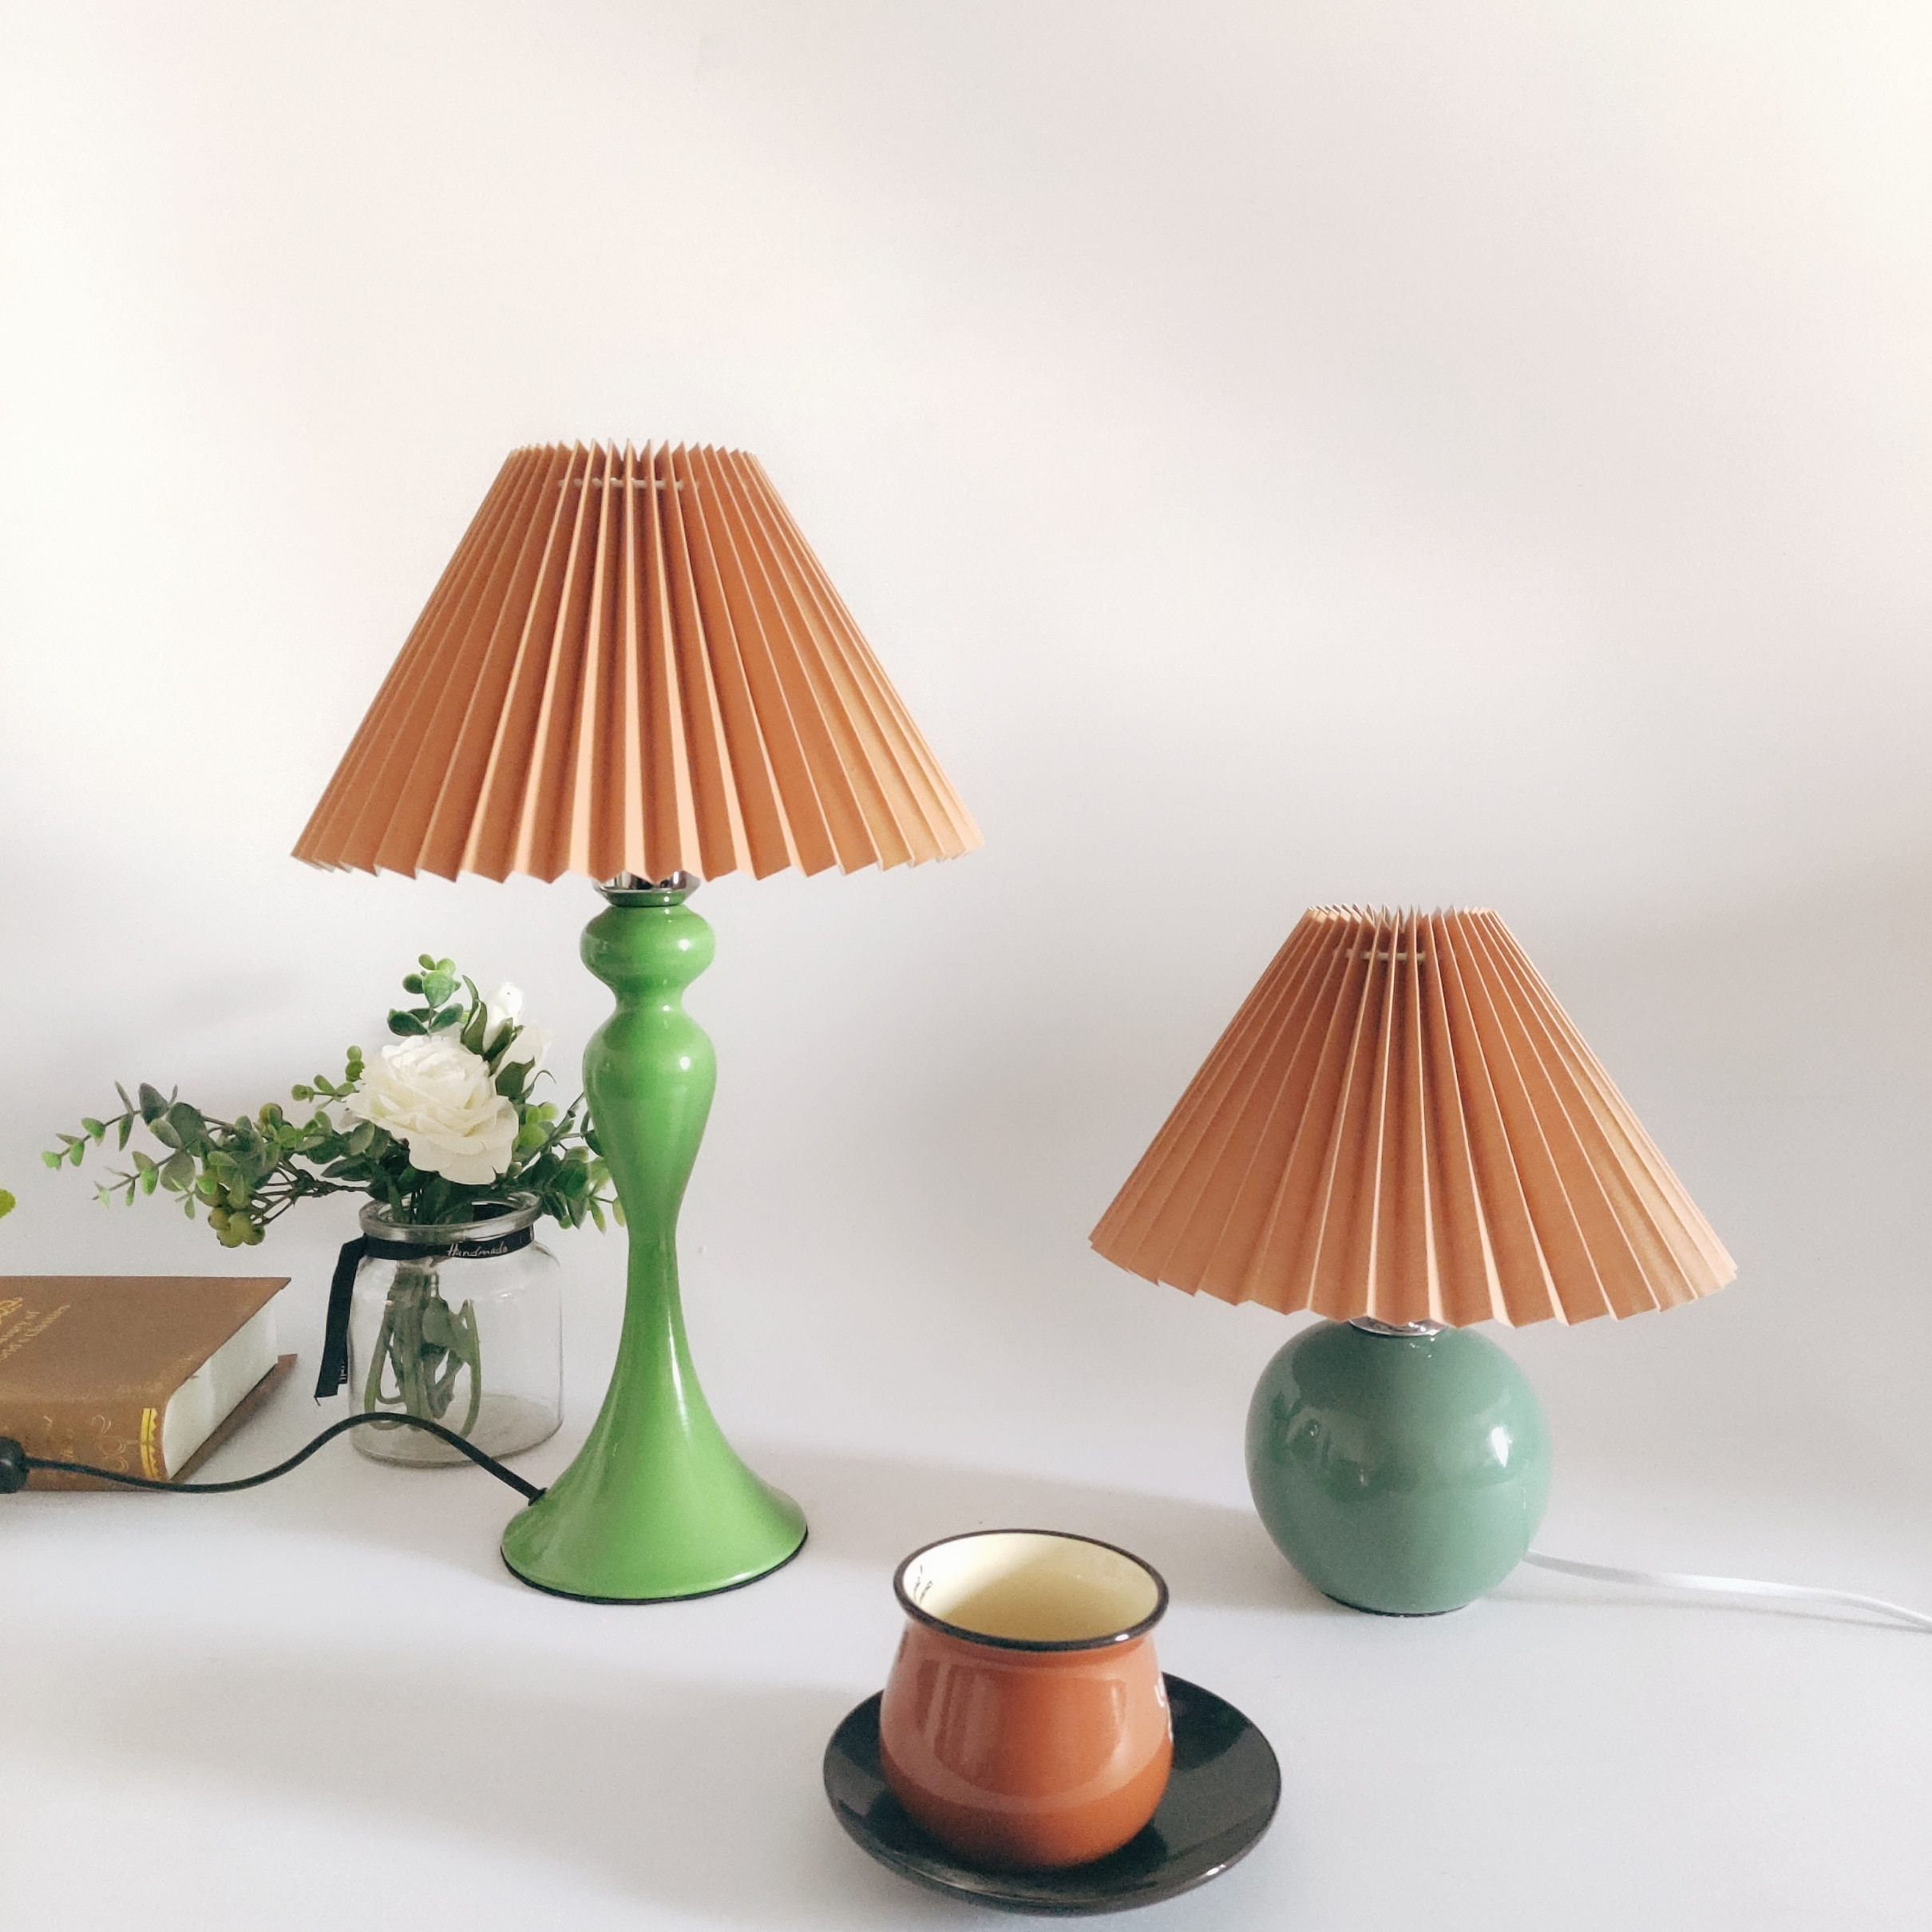 2021 Xianfan New KoreaStyle Iron BaseTable Lamp ForLiving Room With Cloth Composite PVC Retro Lampshade Night Lights